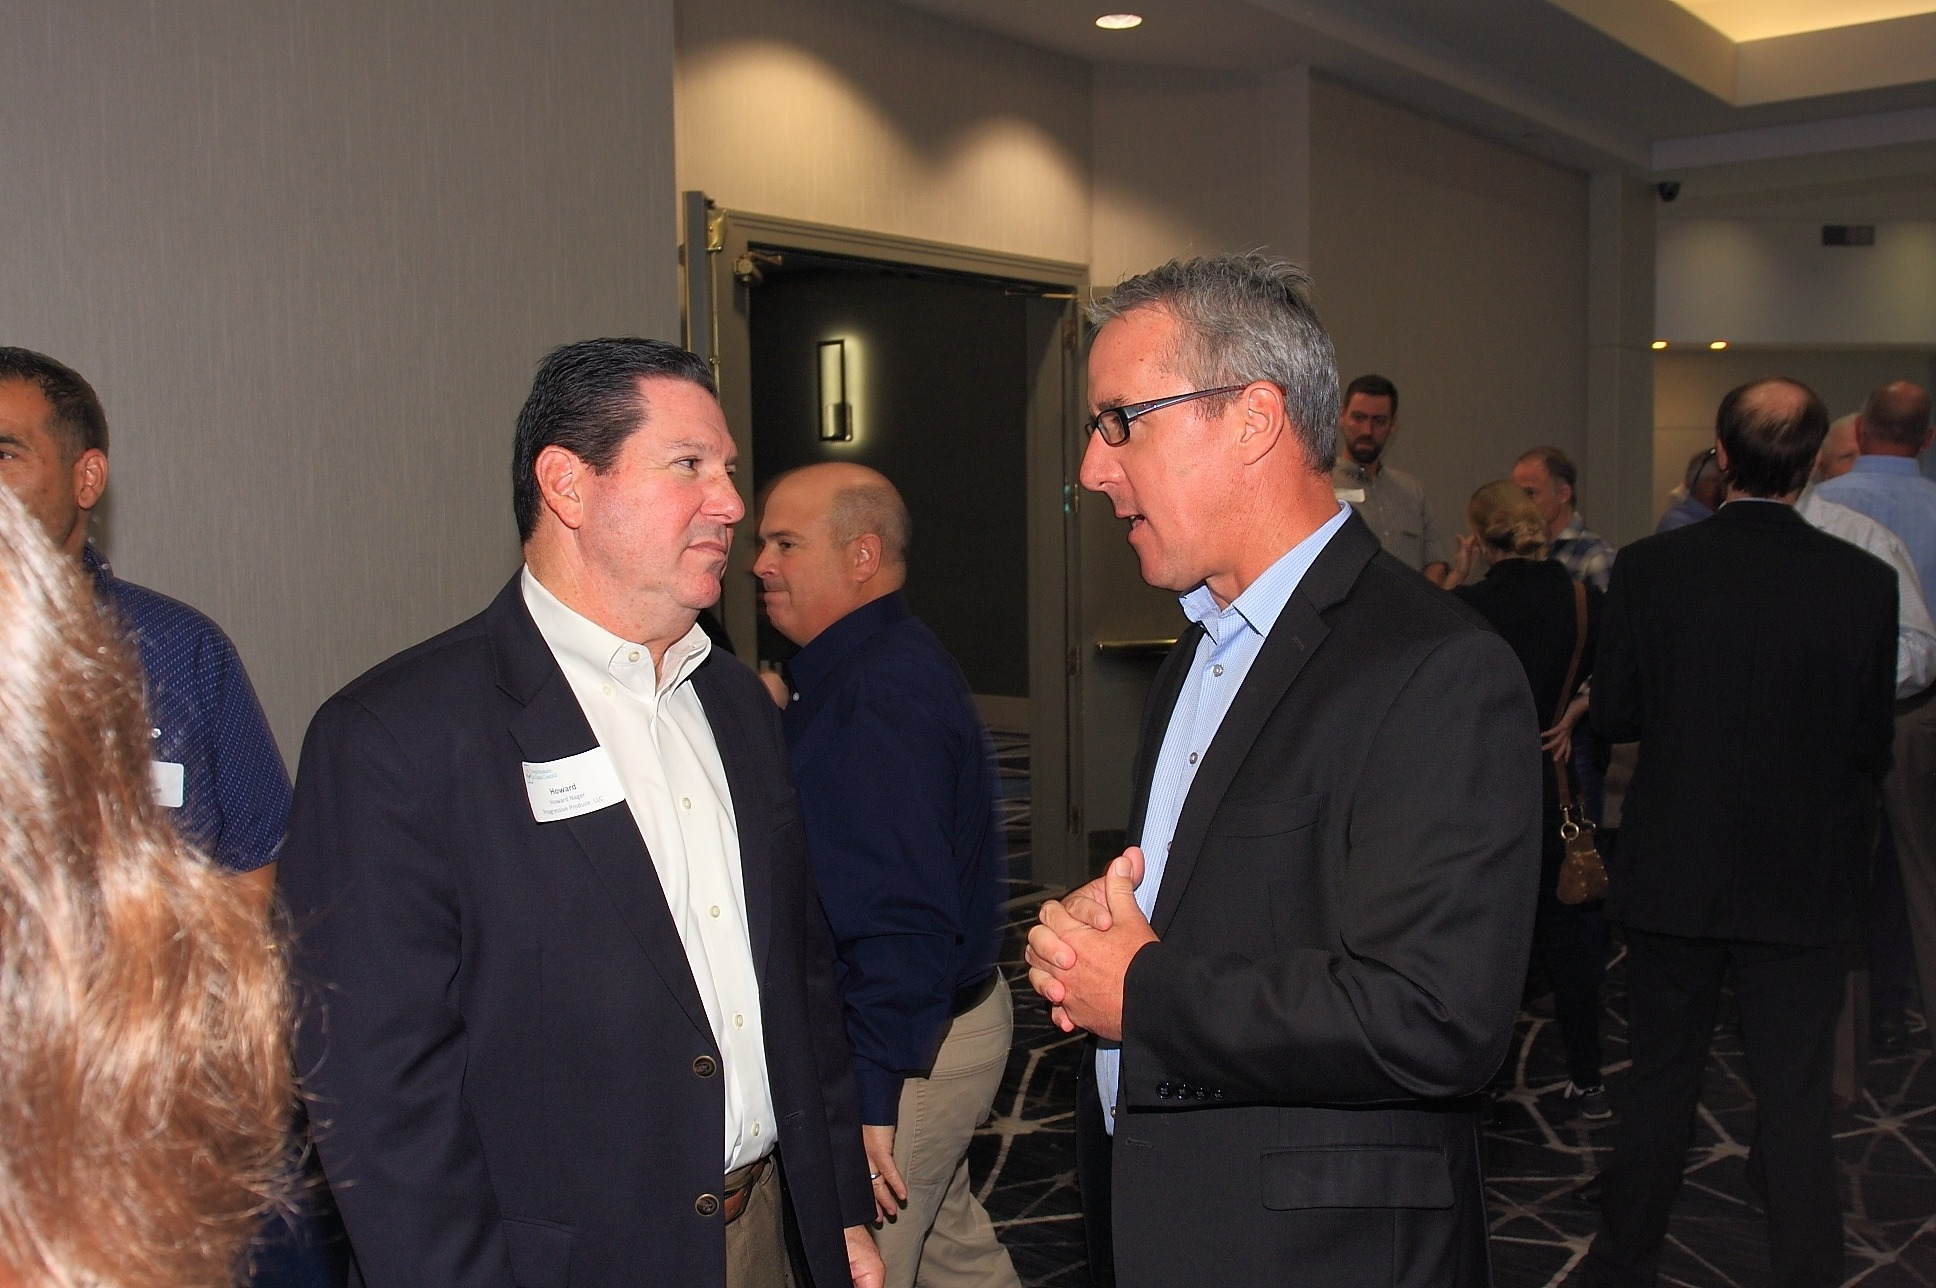 Howard Nager of Progressive Produce, LLC. Enjoying the post-luncheon networking social hour with Paul Kneeland of Gelson's Markets.